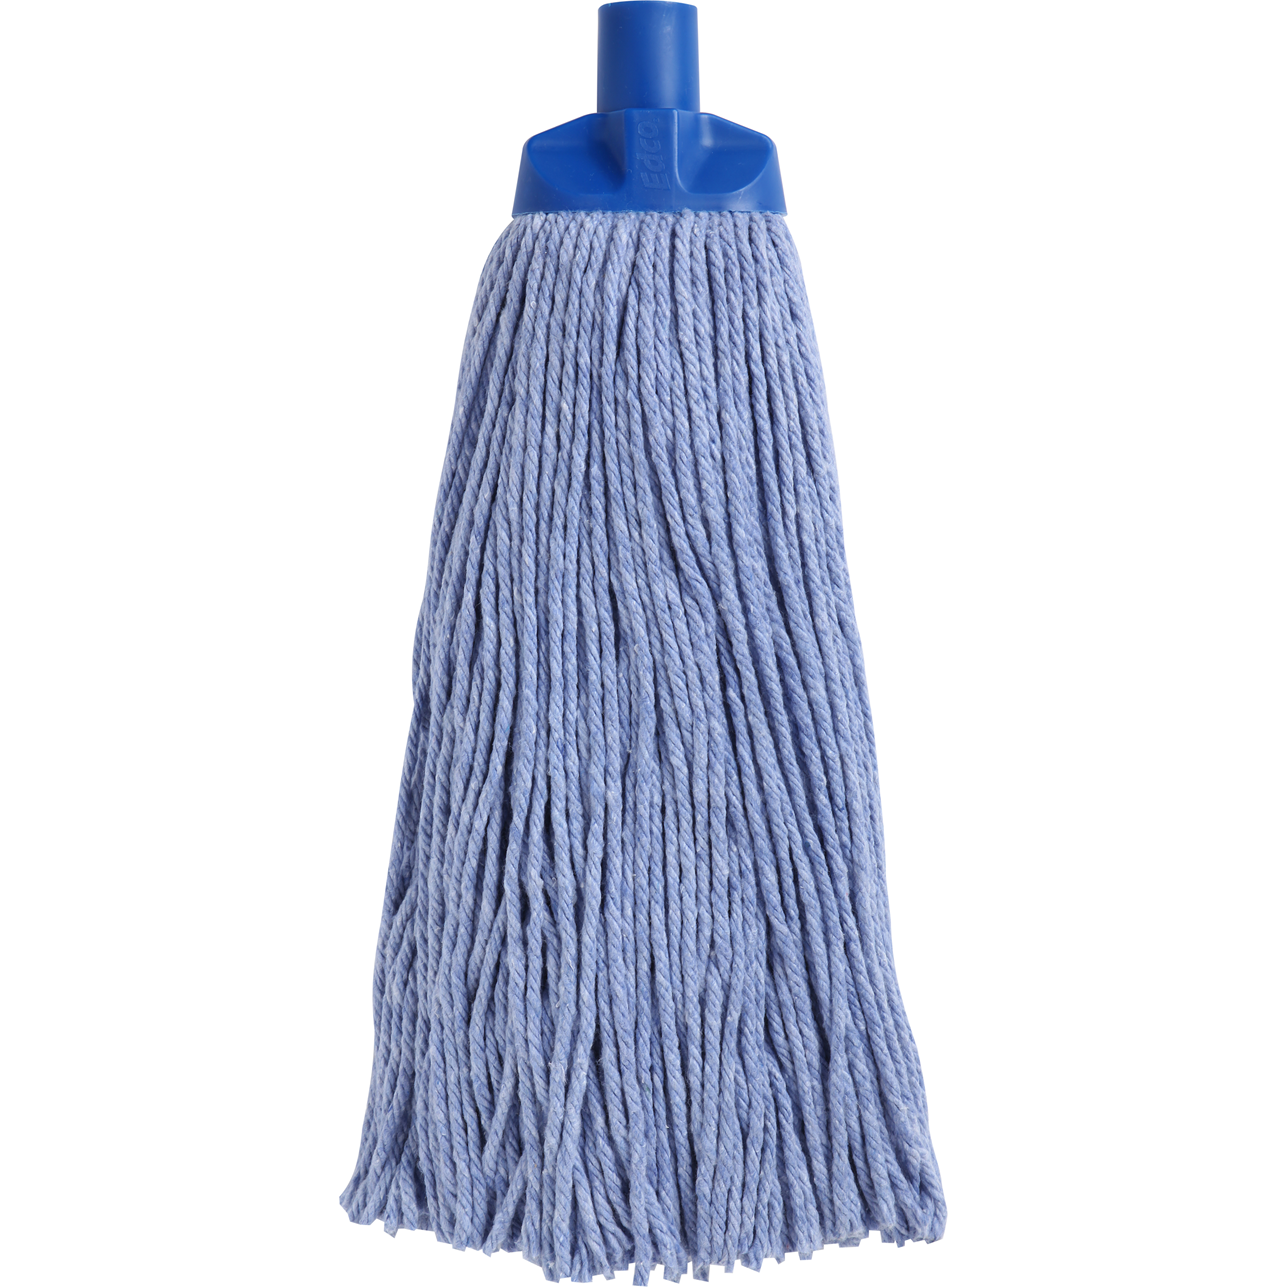 EDCO ENDURO MOP Blue - Sold by Single Unit in multiples of 1 Single Unit